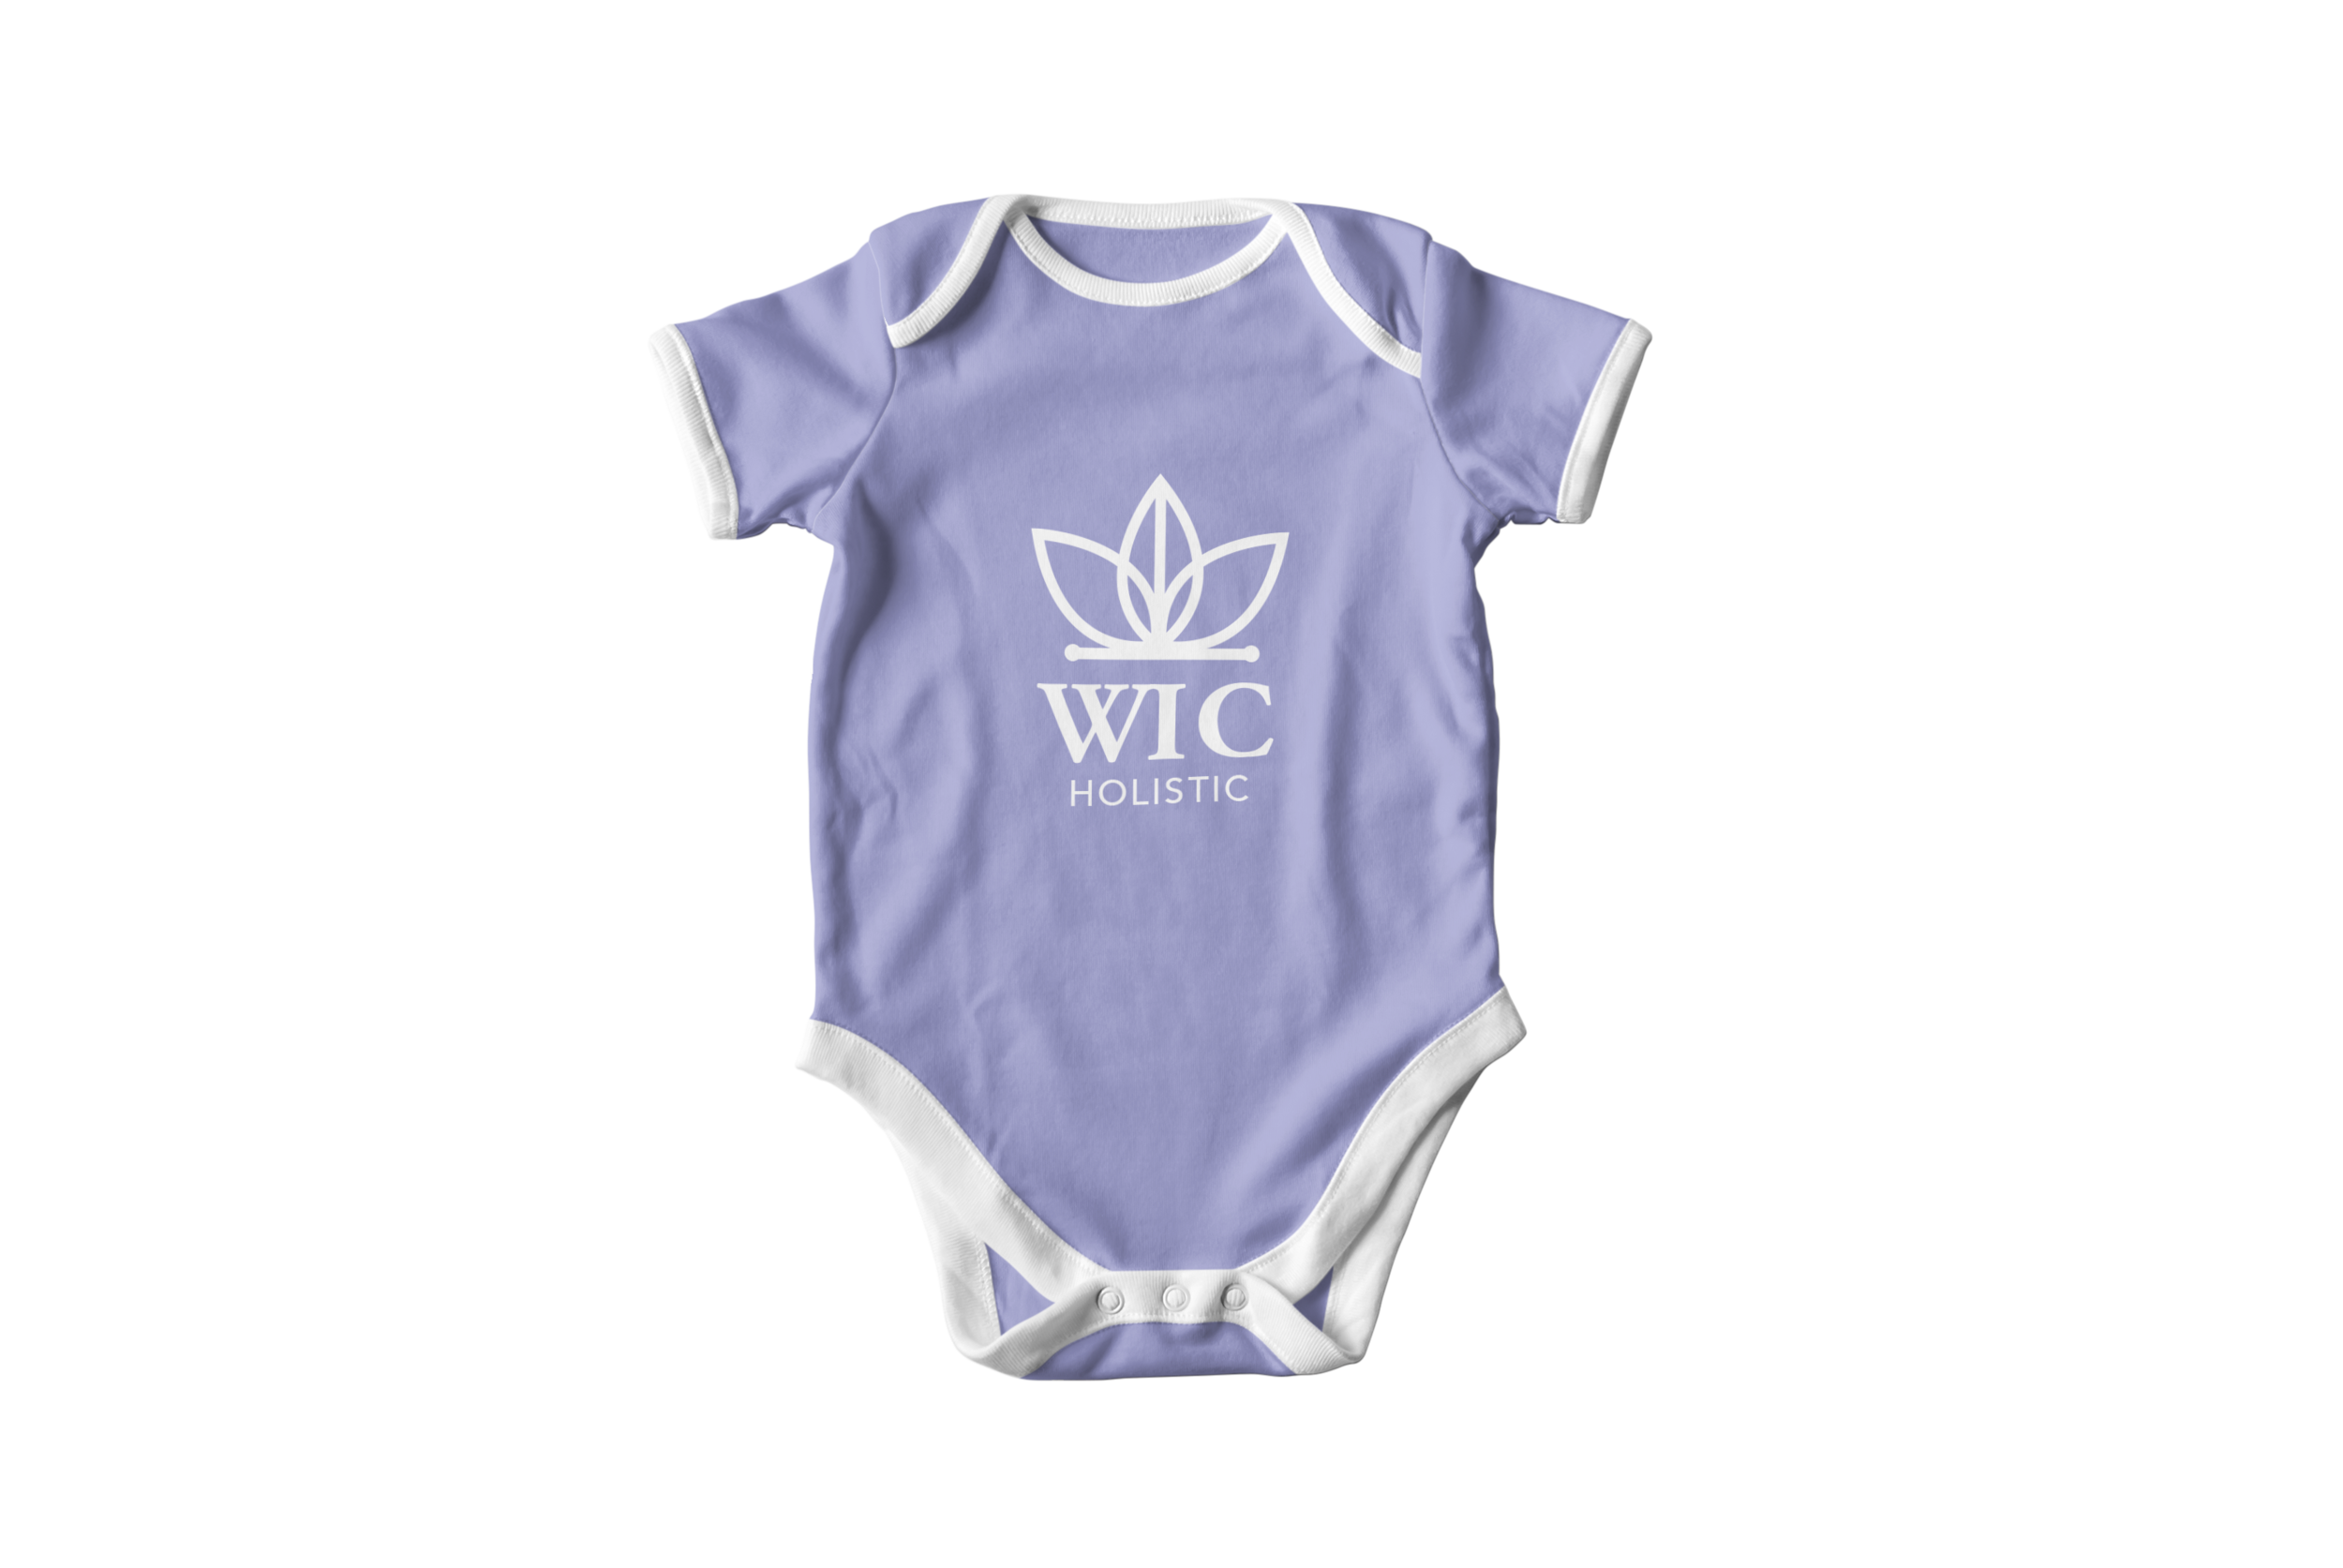 WIC_Baby Bodysuit Mock-up_1.png